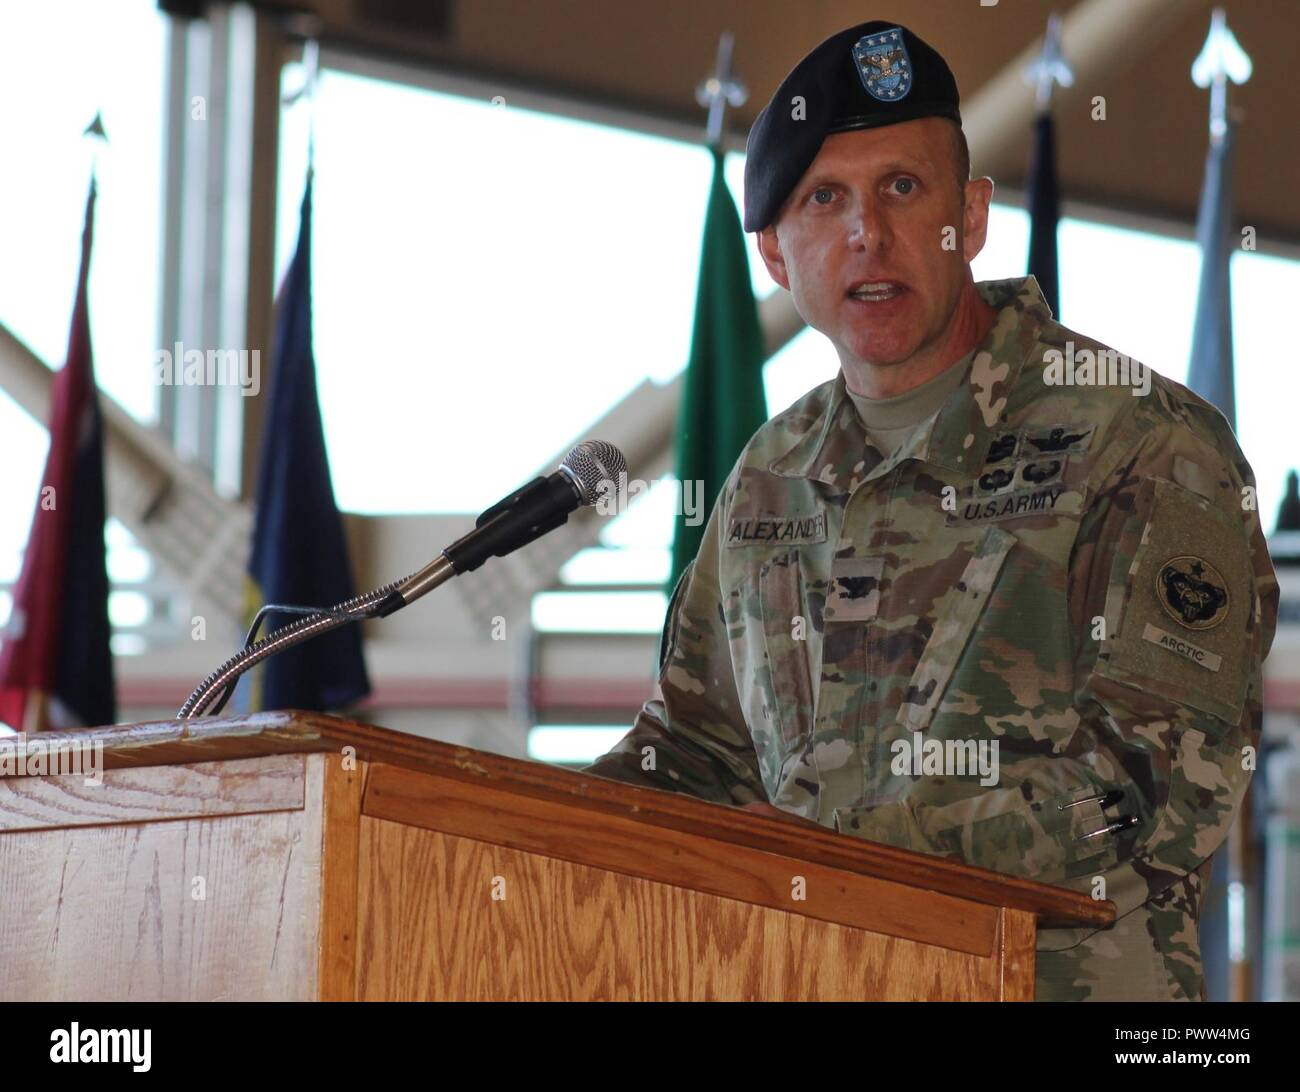 Outgoing U.S. Army Alaska Aviation Task Force Commander Col. Blake Alexander thanks USARAK and Fort Wainwright key leaders and staff members, as well as leaders from the civilian community June 29 at the UATF change of command at Fort Wainwright, Alaska. Stock Photo